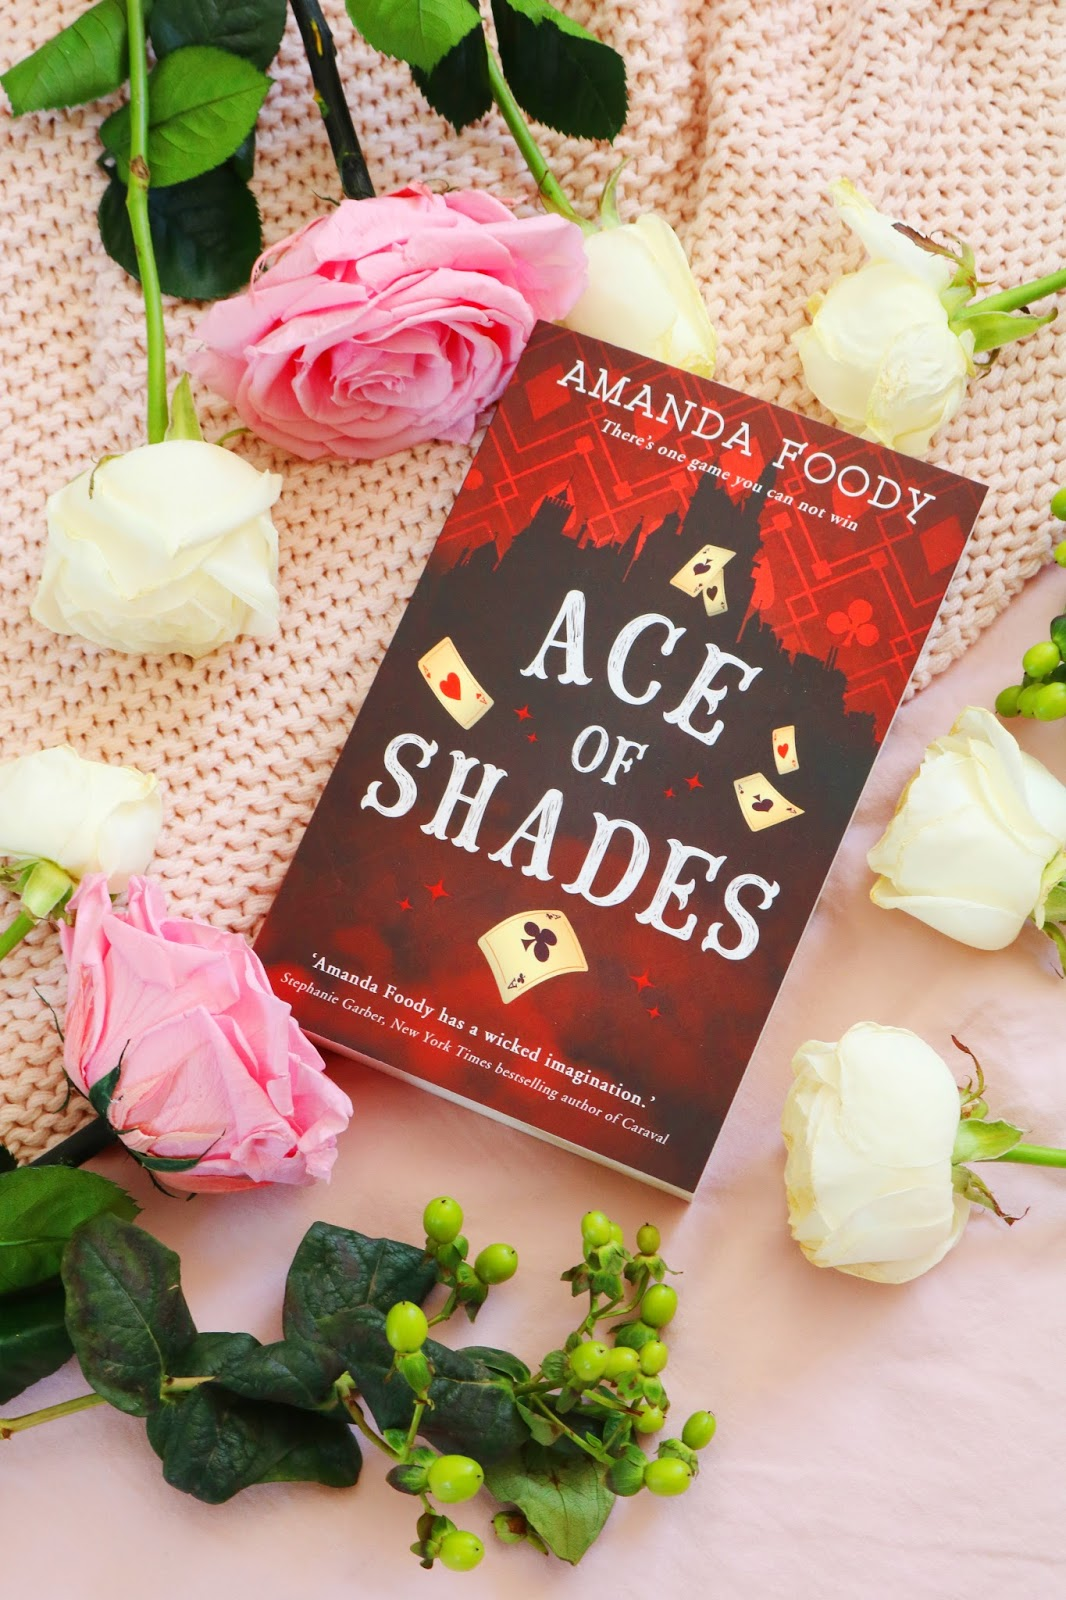 Blog Tour: Ace Of Shades by Amanda Foody